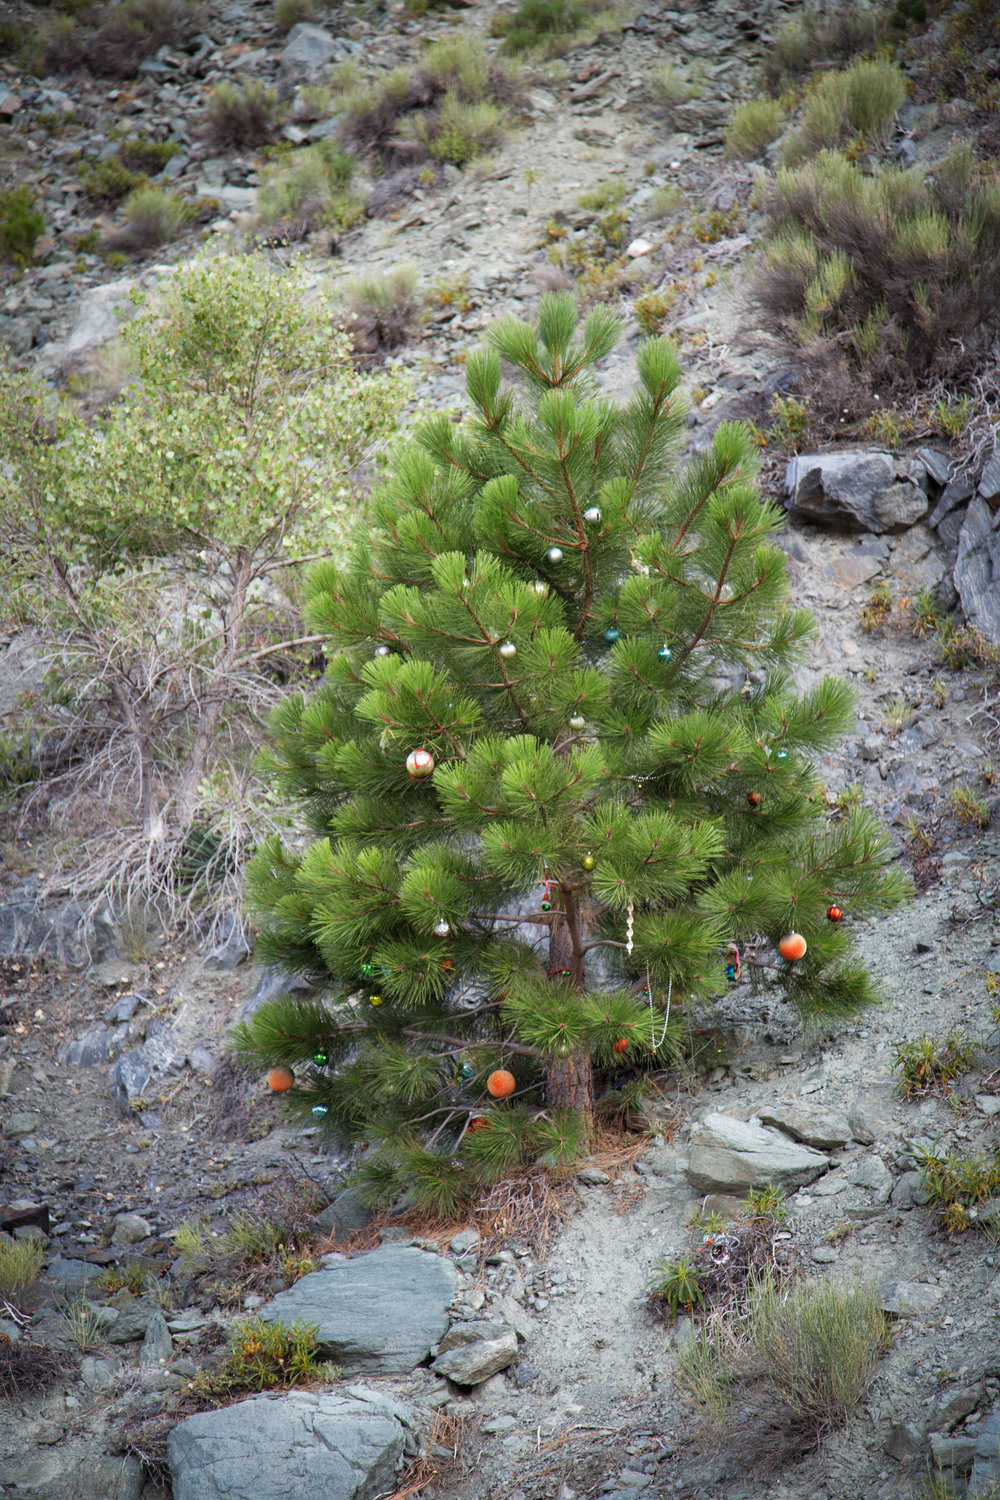 Someone had decorated this pine with Christmas ornaments.  Merry Christmas!